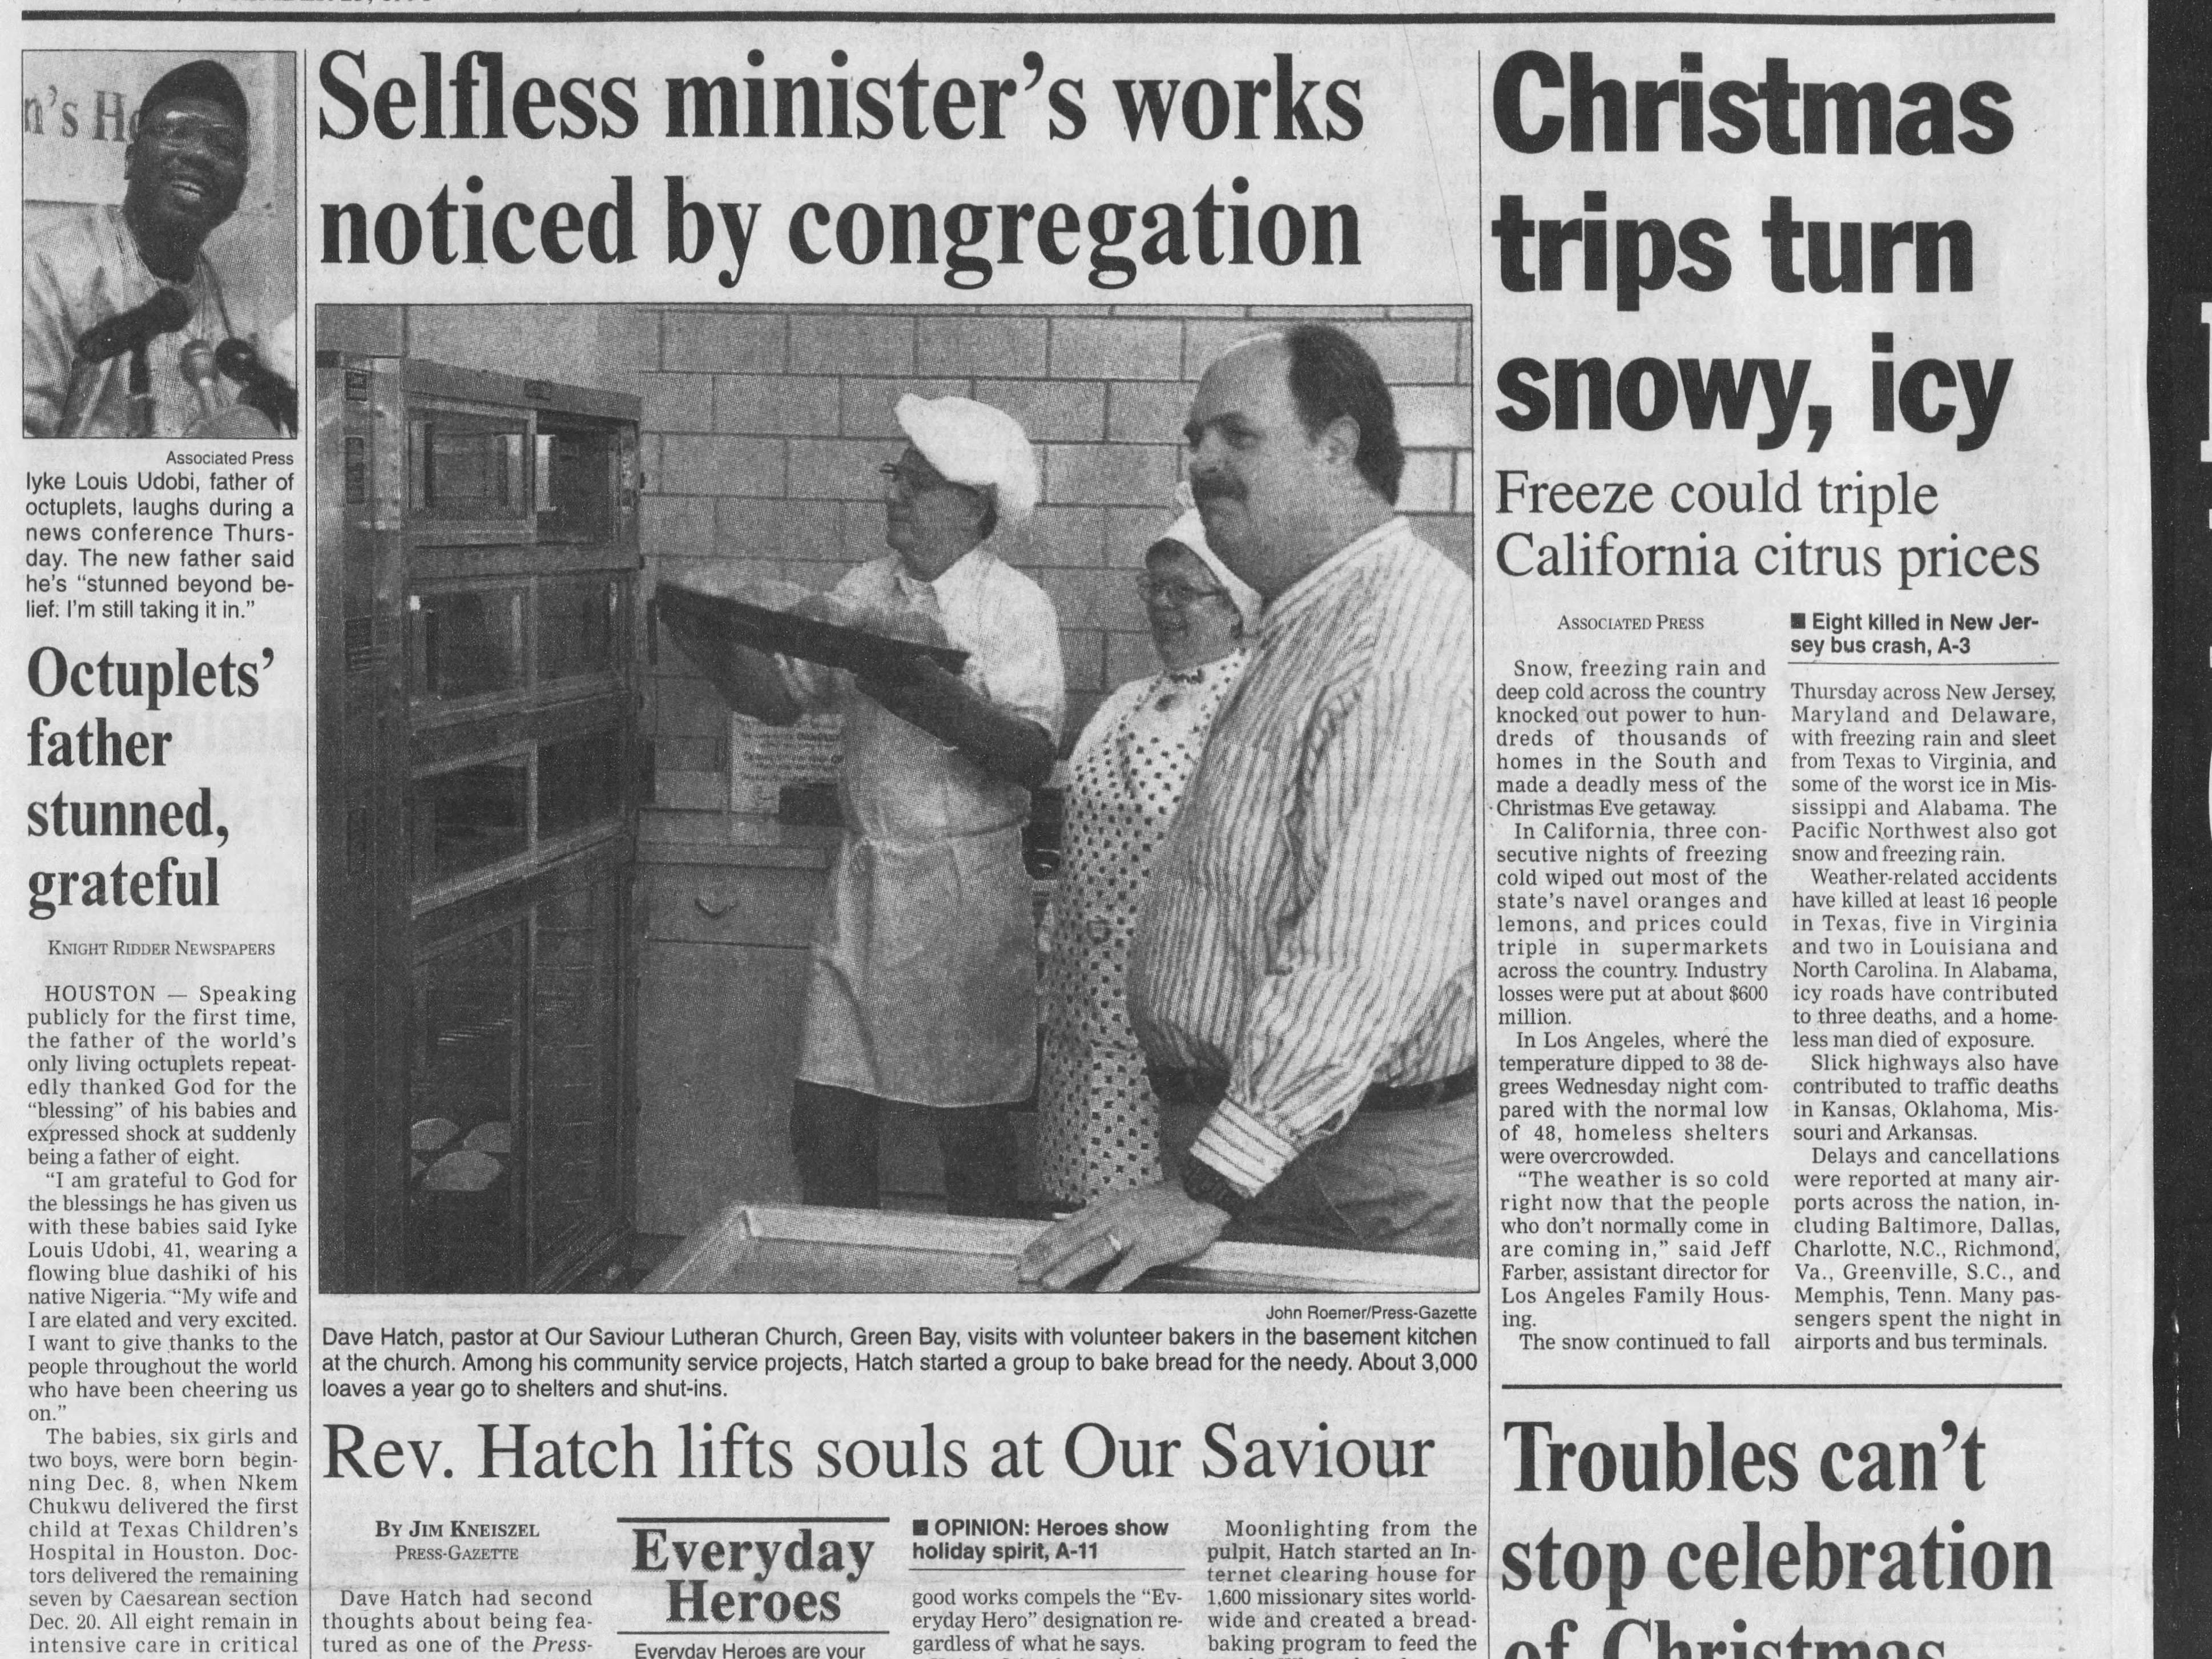 Today in History: Dec. 25, 1998